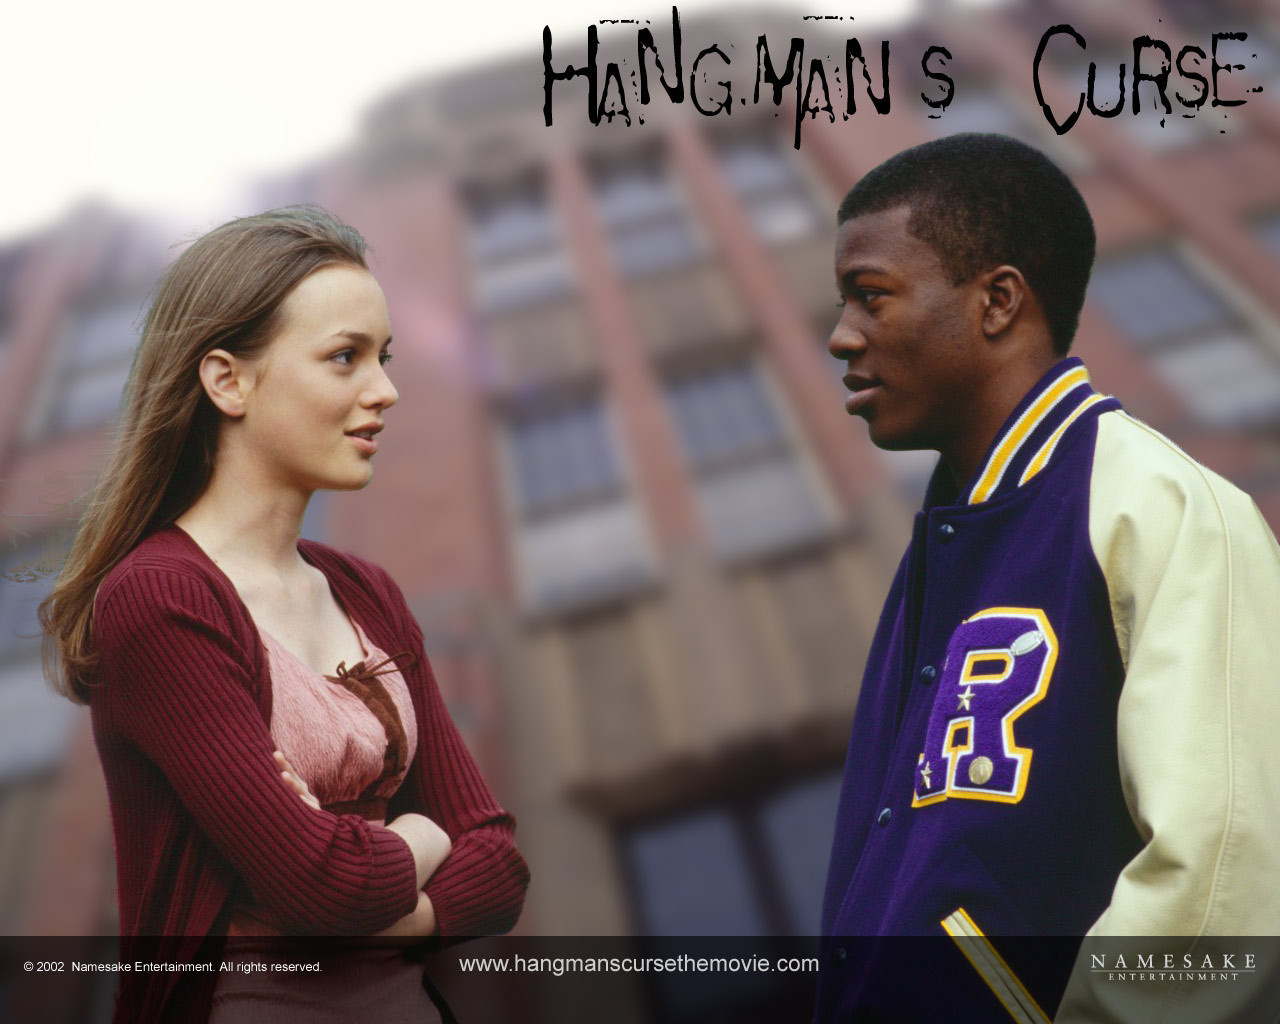 Edwin Hodge and Leighton Meester in Hangman's Curse (2003)